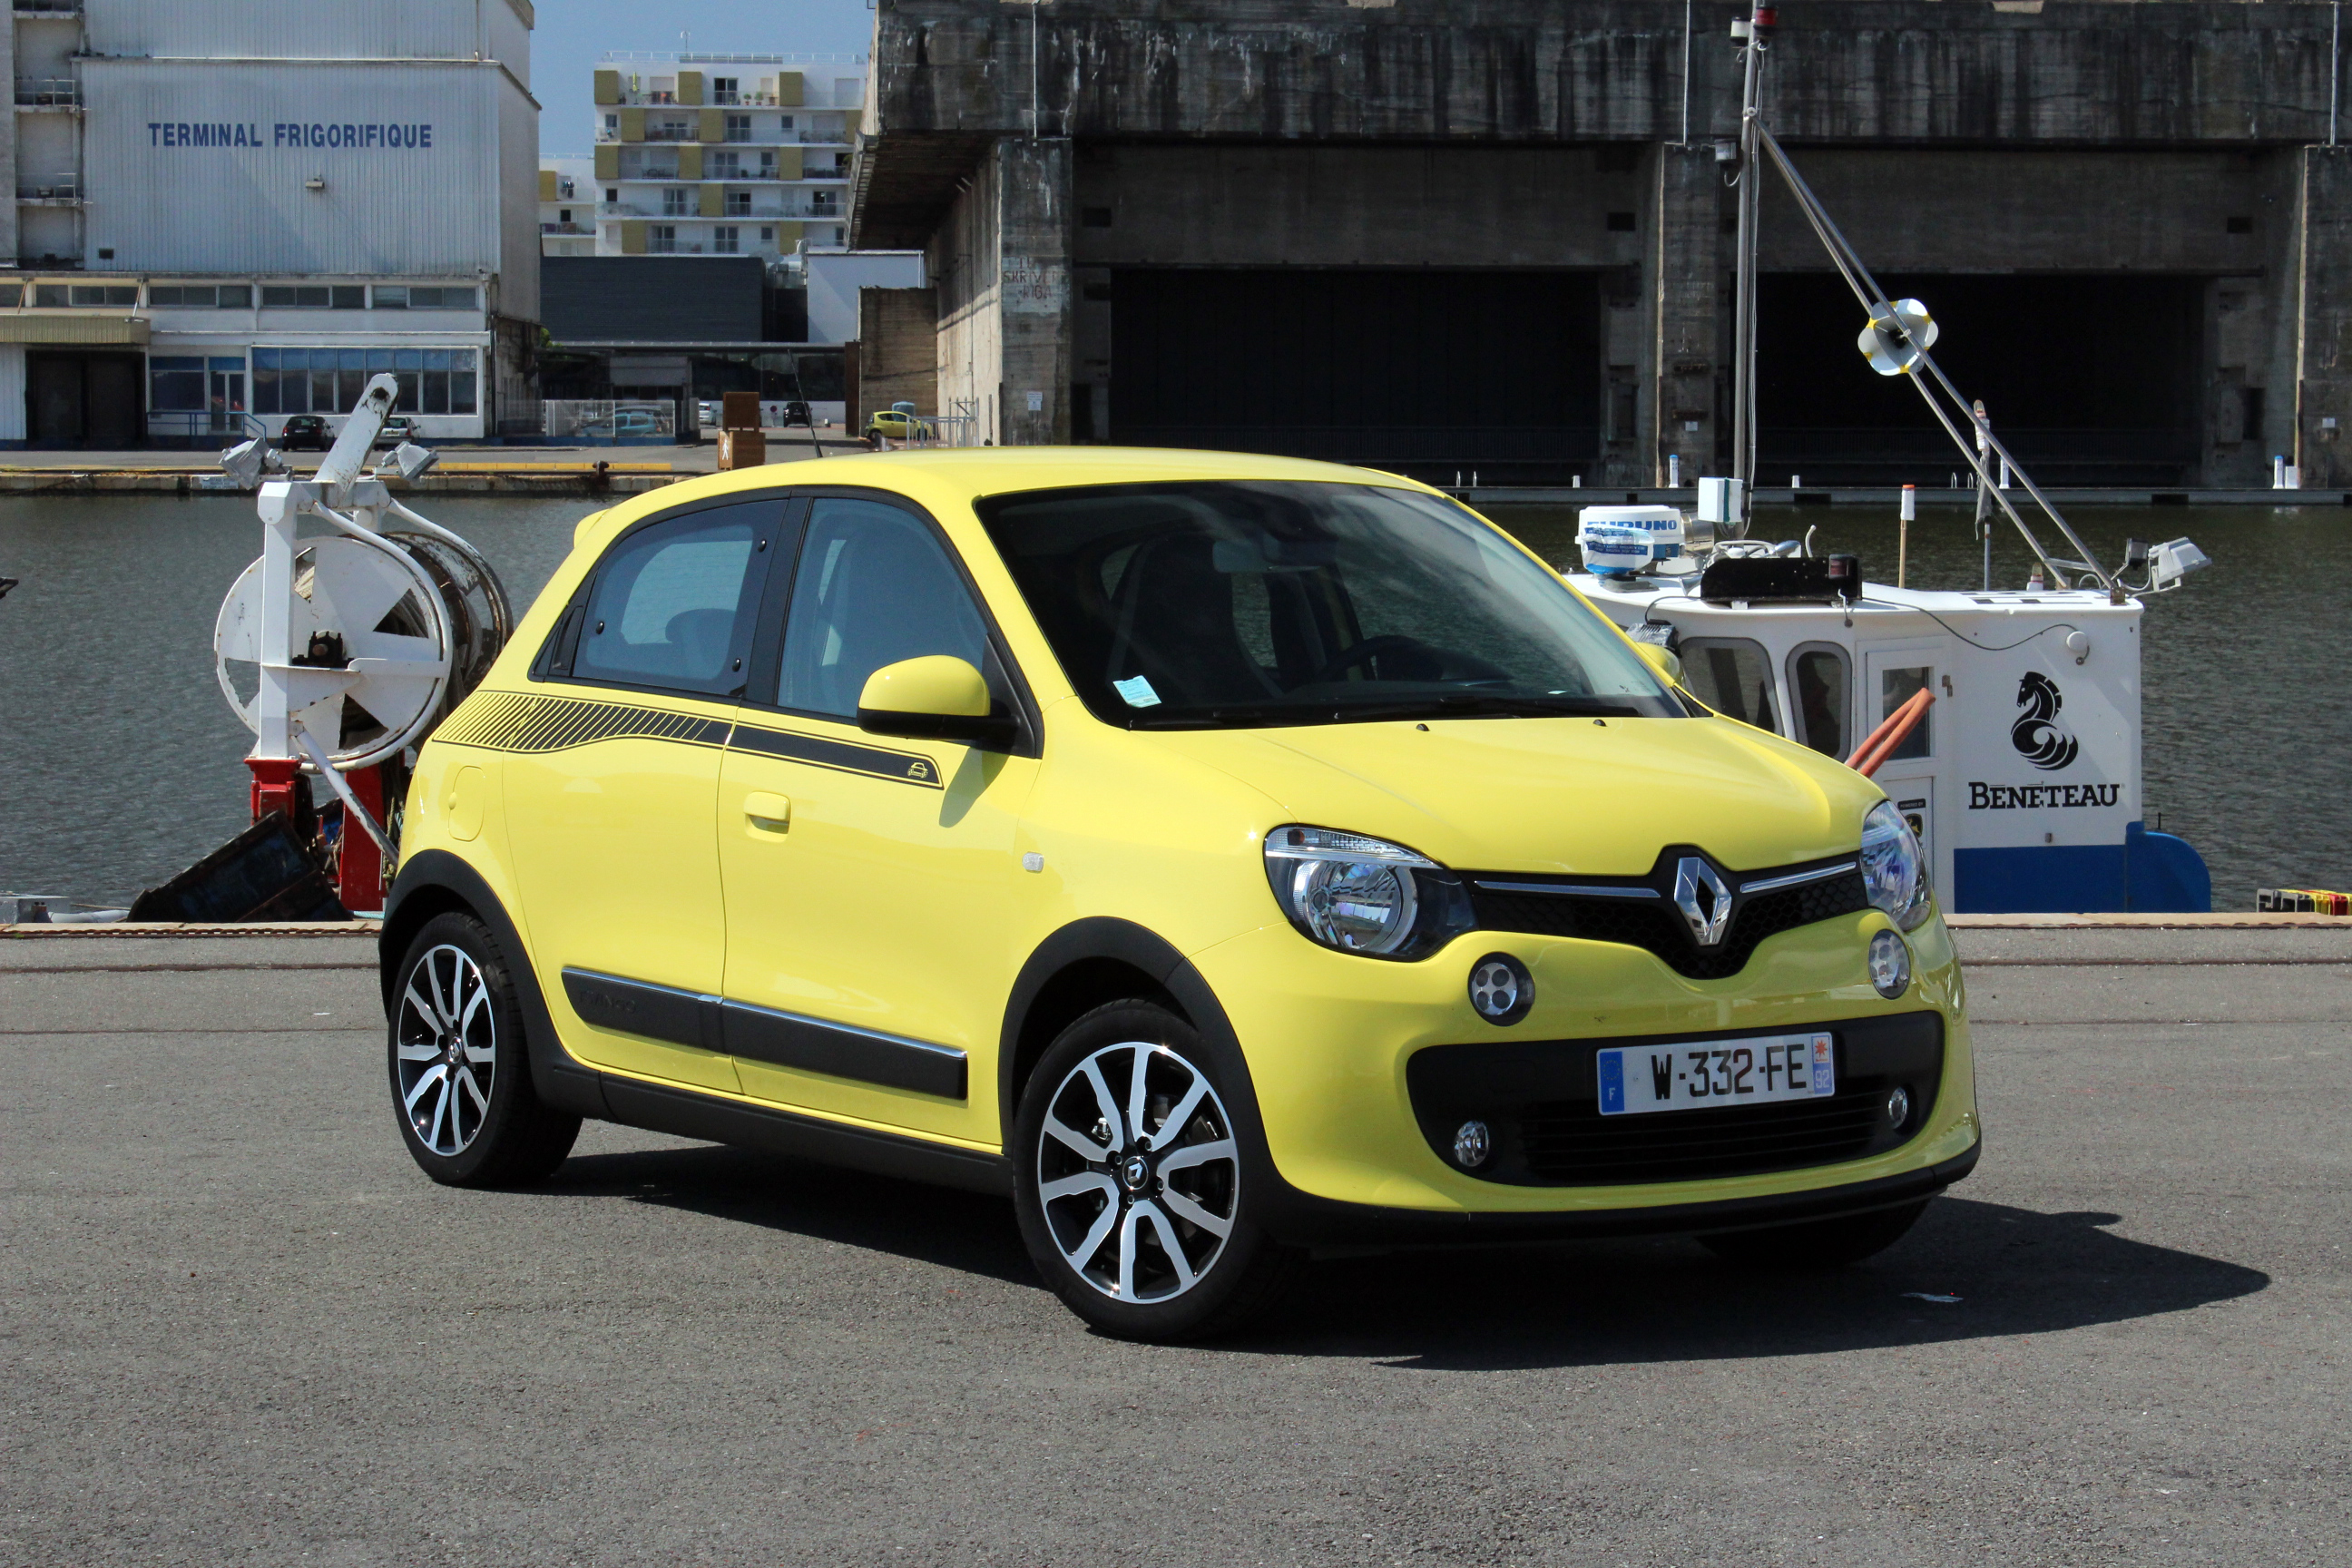 comparatif vid o renault twingo vs peugeot 108 vs citro n c1 remise plat. Black Bedroom Furniture Sets. Home Design Ideas